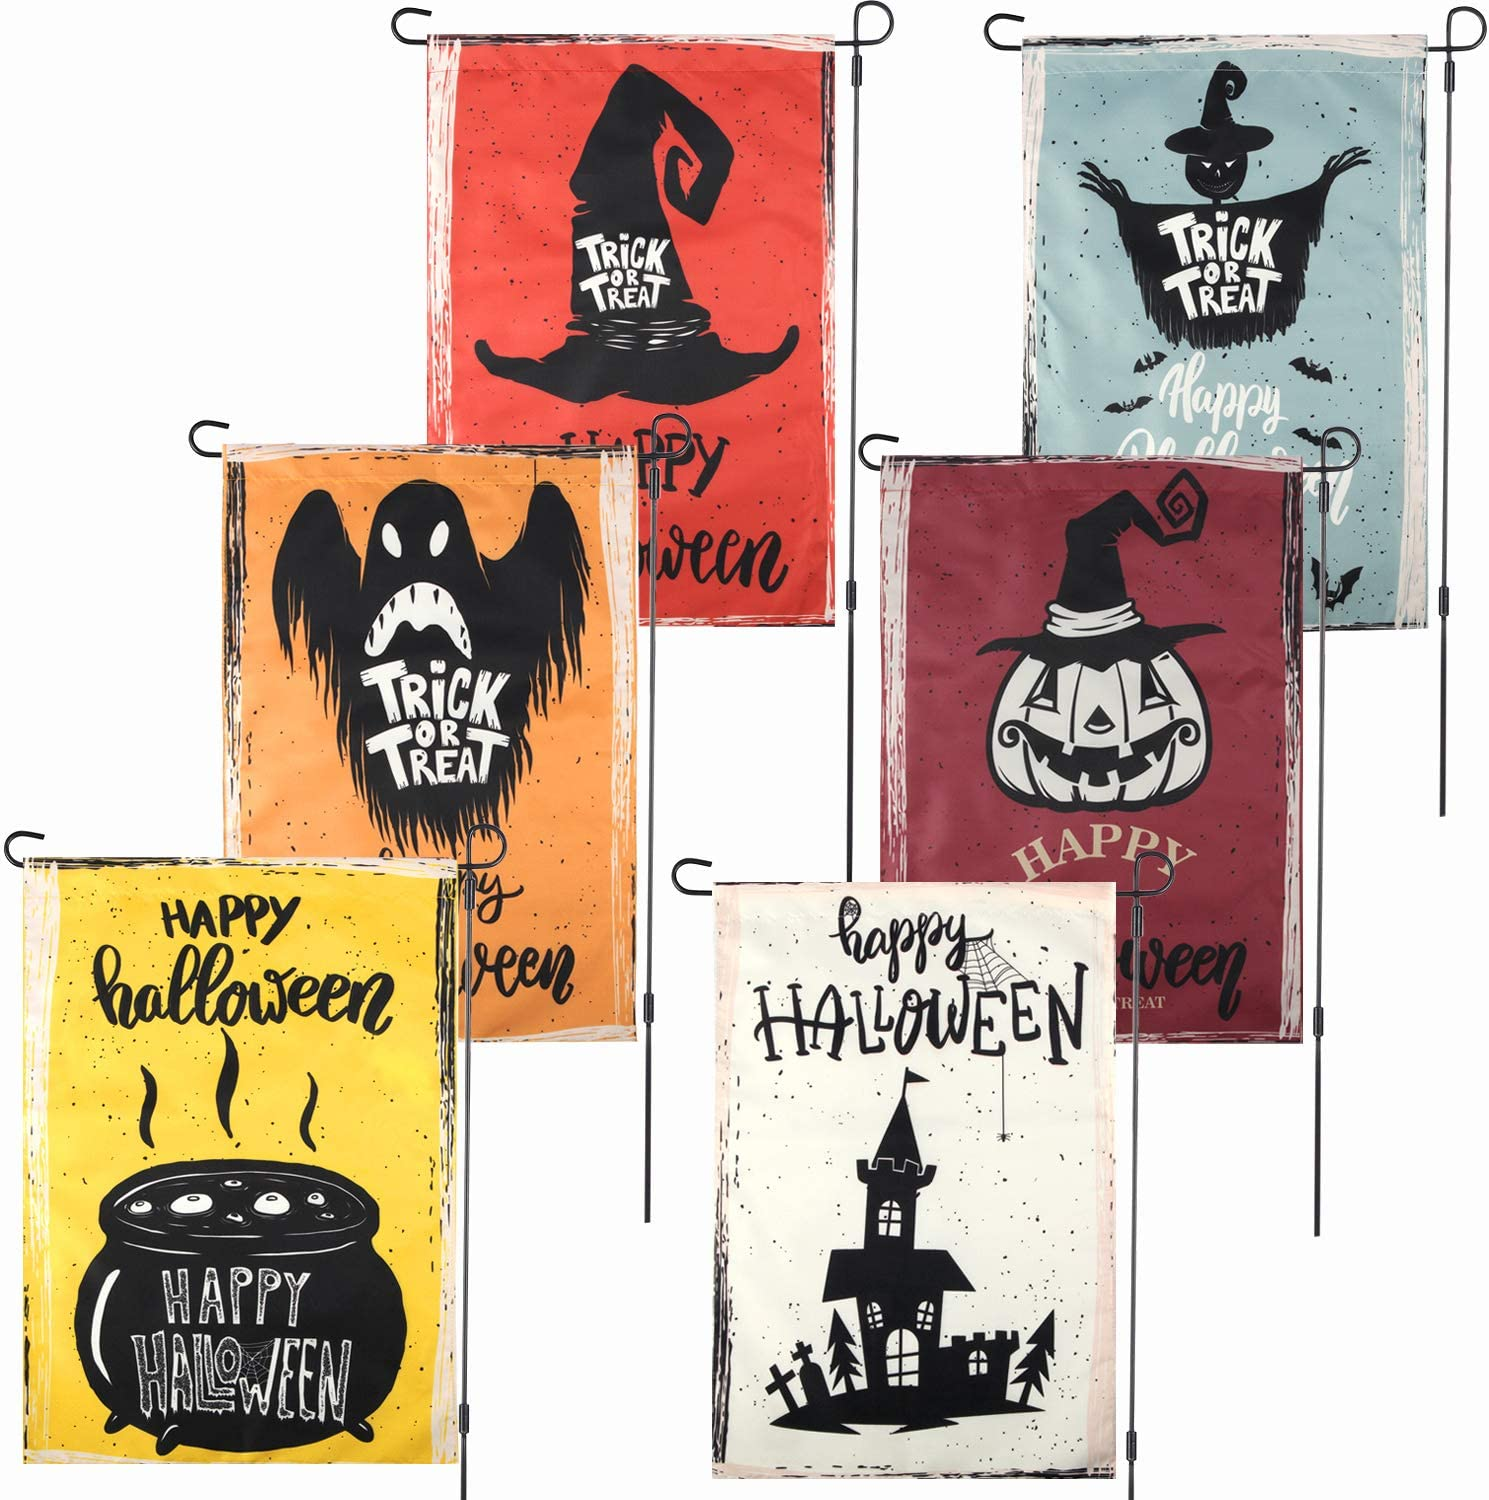 Boao Set of 6 Halloween Home Garden Flags Double-Sided Garden Outdoor Yard Flags Trick or Treat Ghost Pumpkin Witch Spooky Scarecrow Garden Flags for Happy Halloween Party Decor (12.5 x 18 Inch)